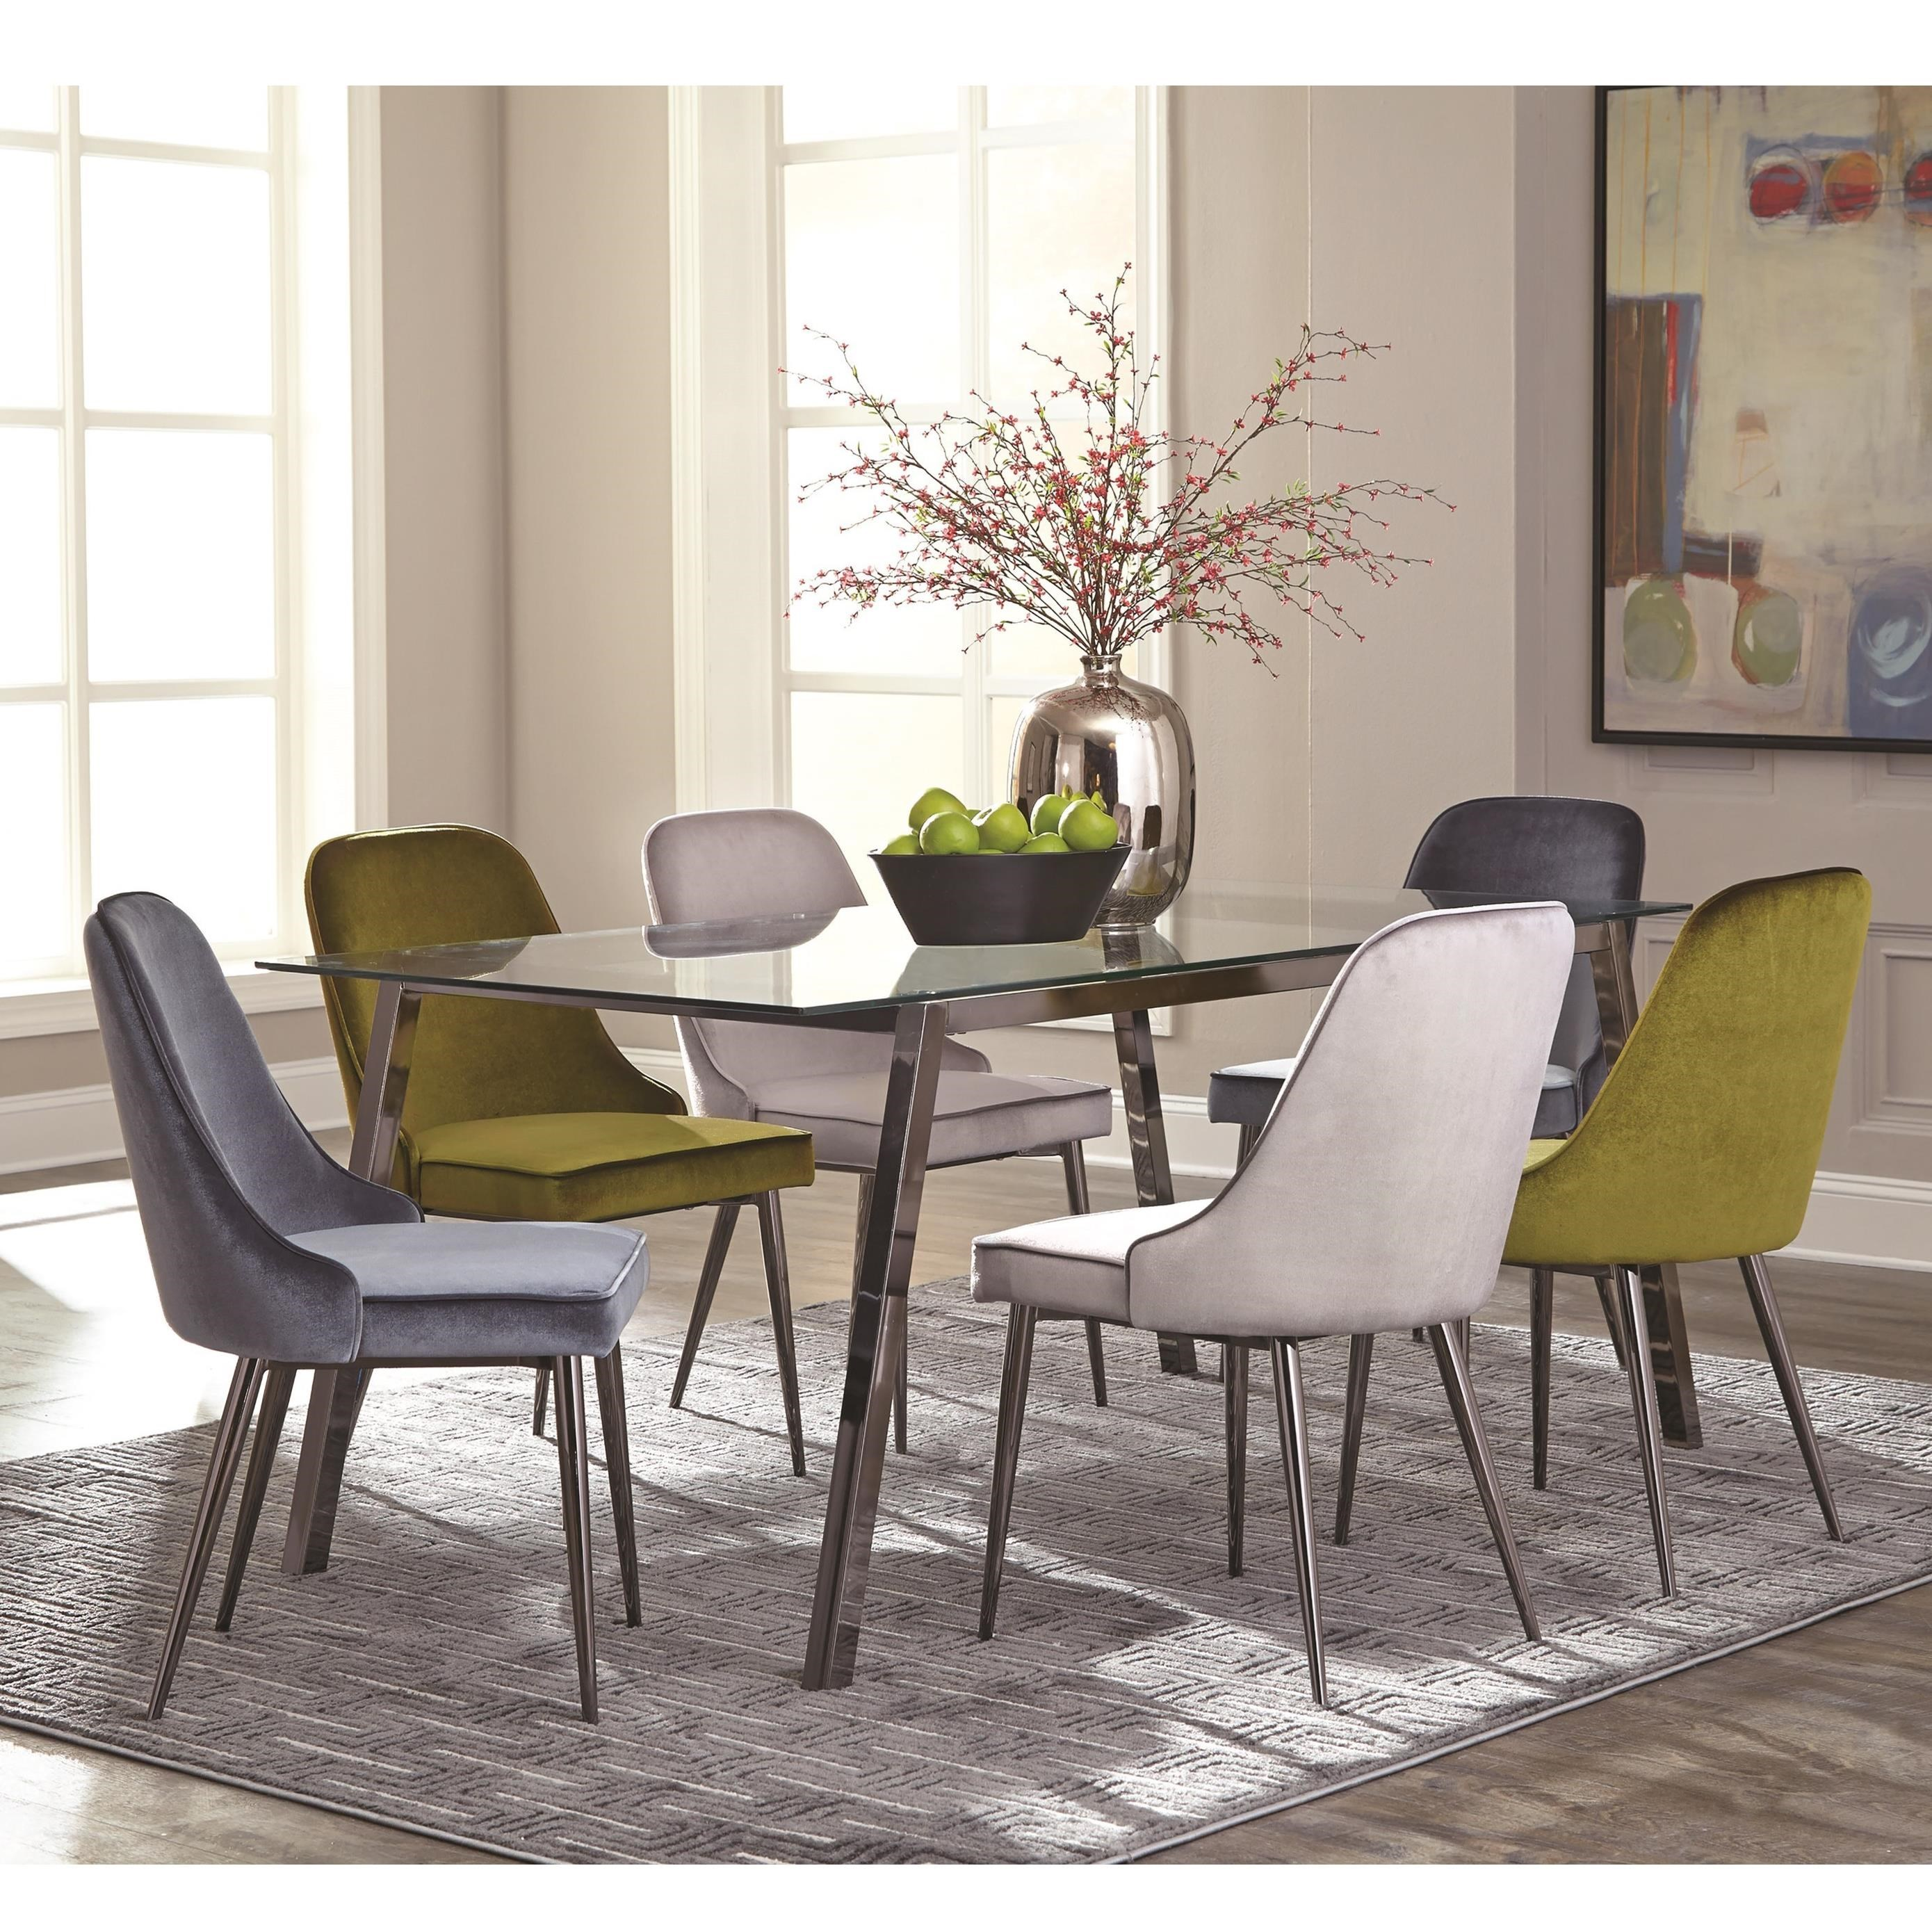 Scott Living Inslee Modern Glass Top Dining Table Set   Coaster Fine  Furniture